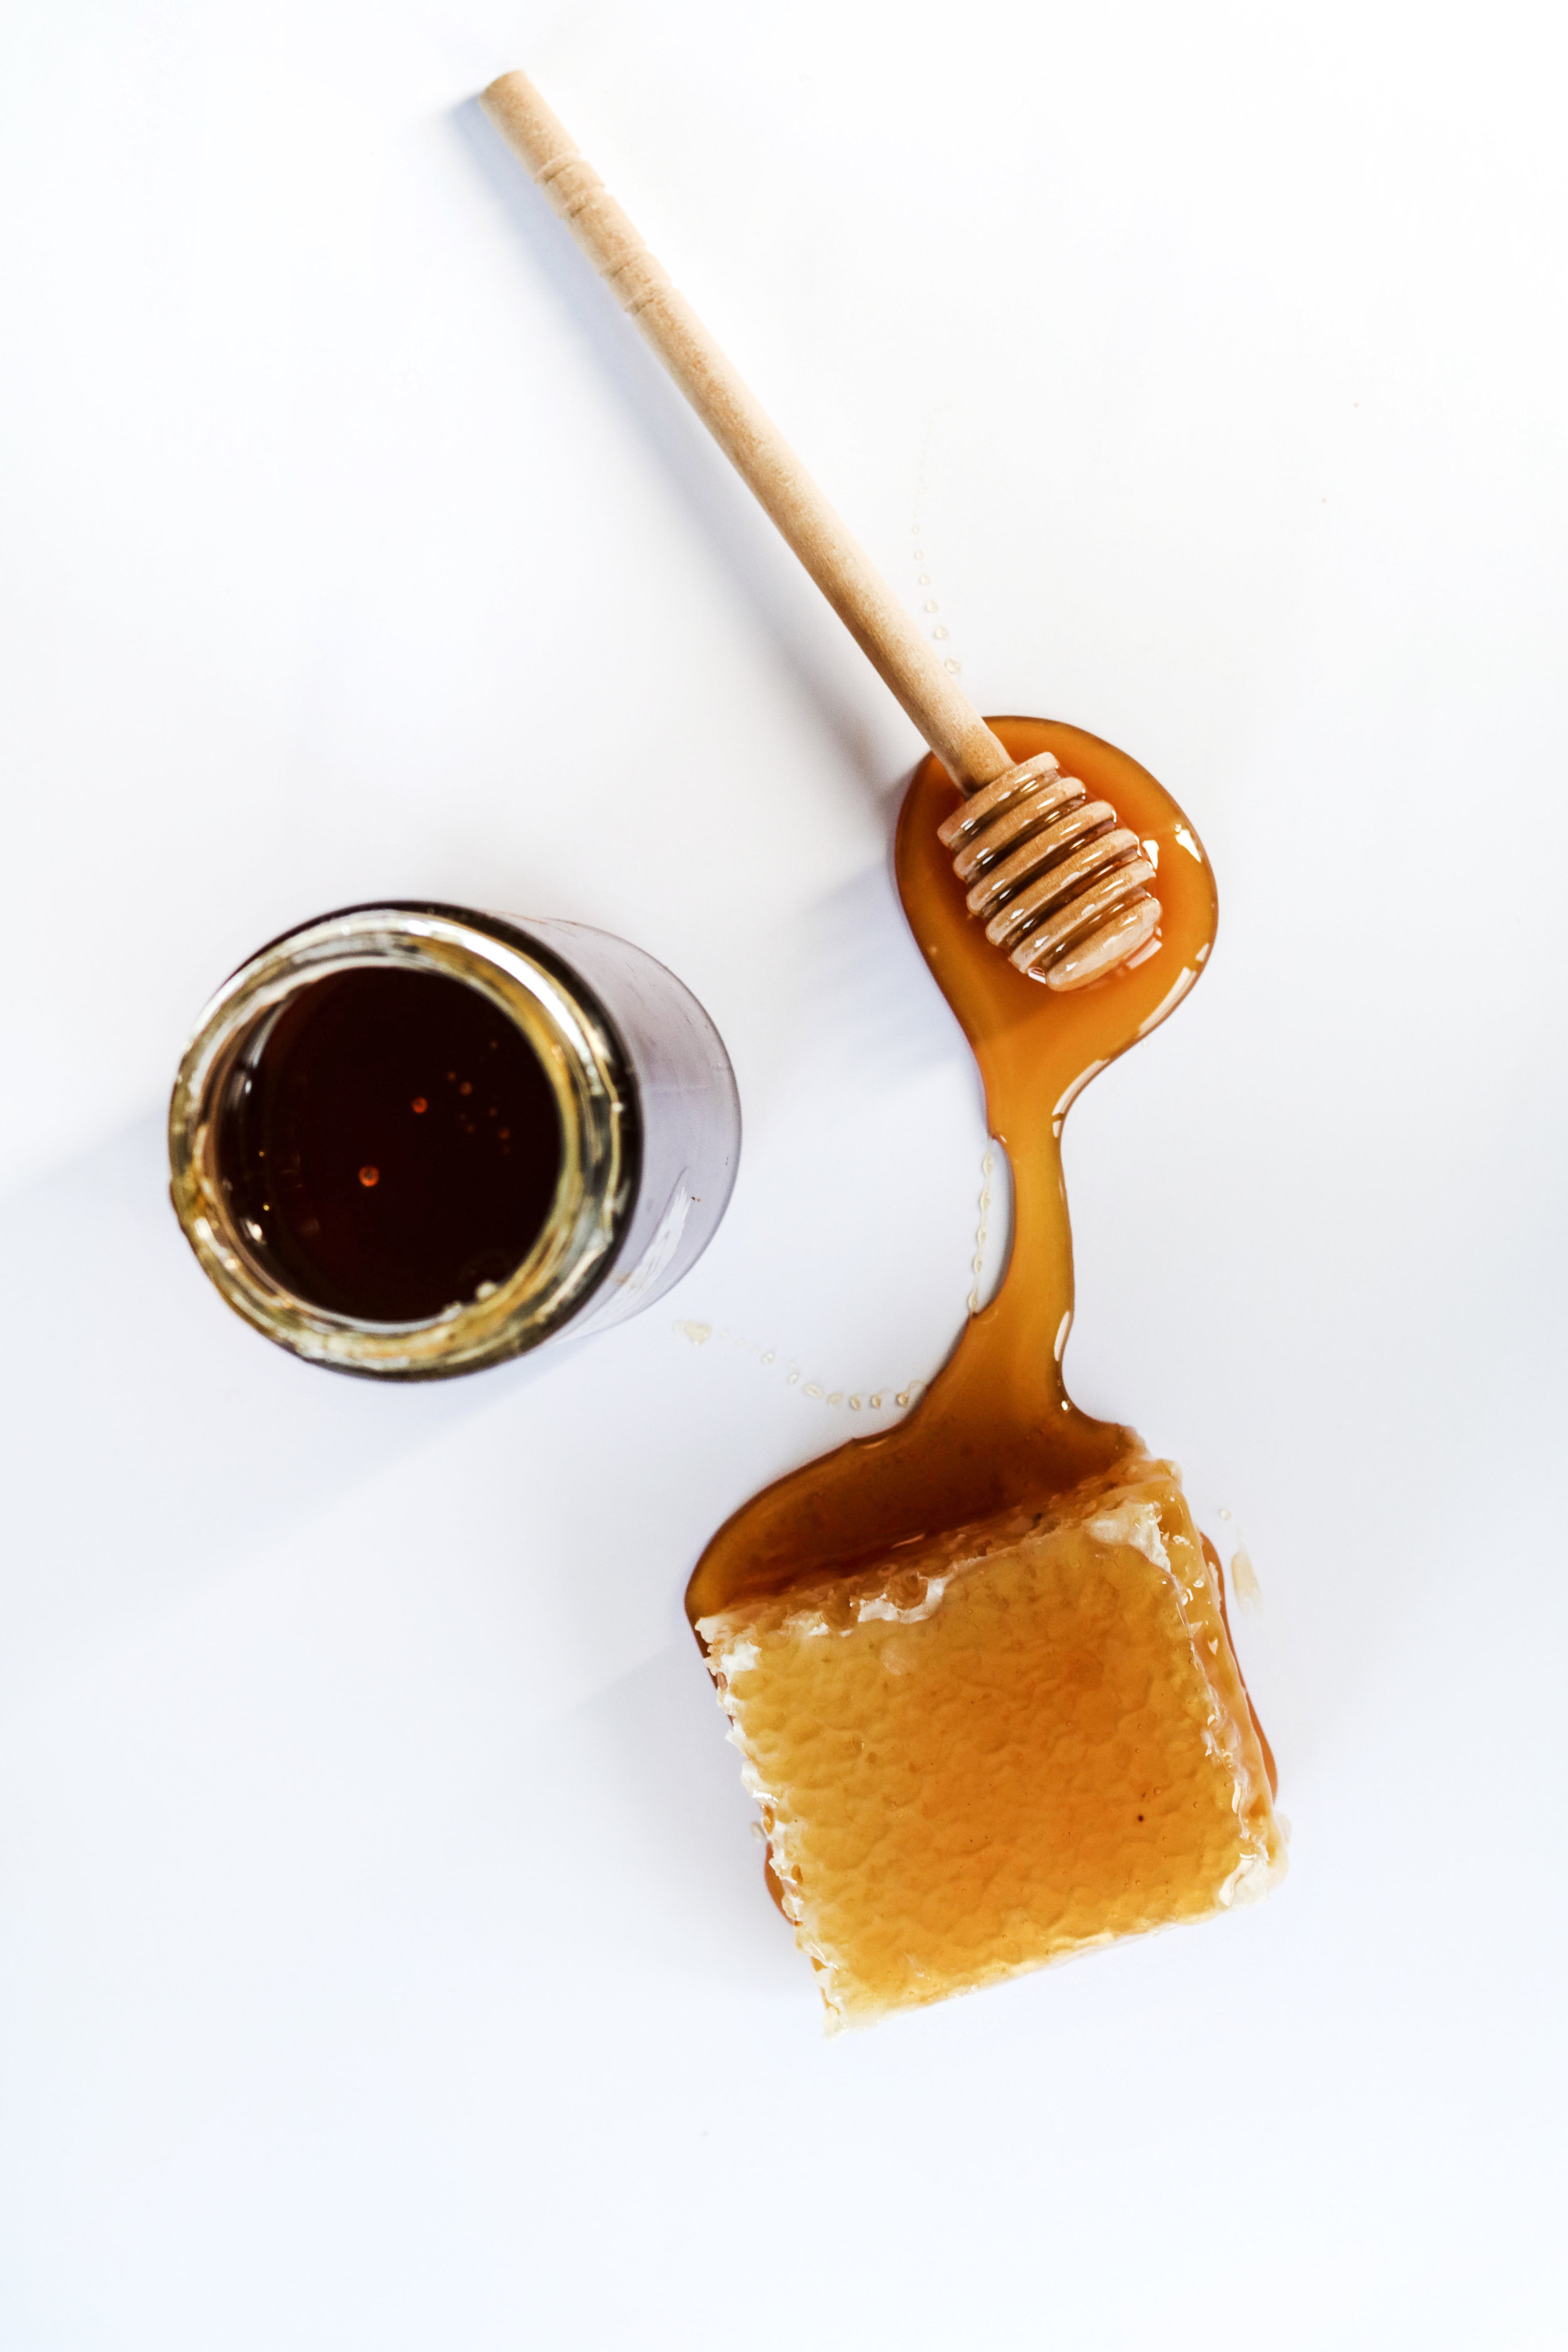 Propolis Extract & Honey Extract - Propolis and Honey Extract are beneficial for balancing, healing and soothing problematic skin. It also accelerates the rate of cell growth and decongests pores.